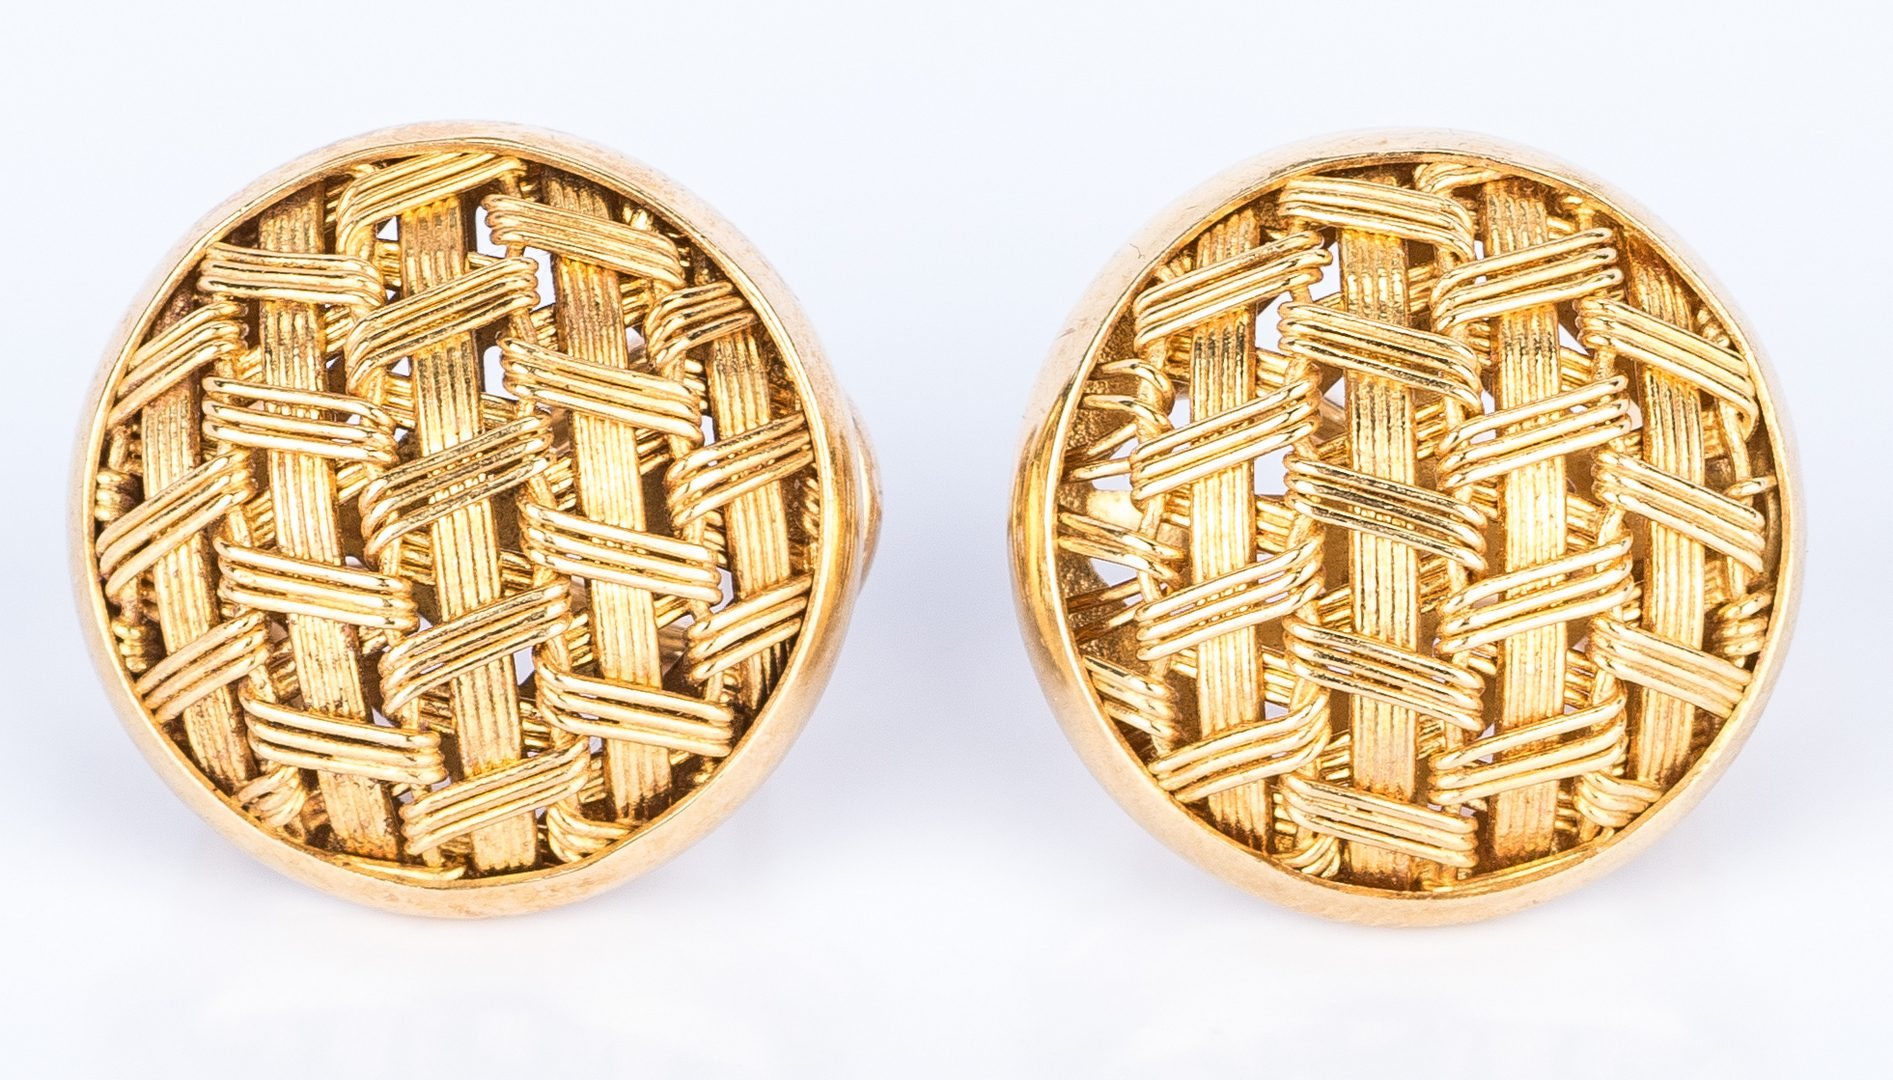 Lot 680: 4 Pairs of 14K Gold Earrings